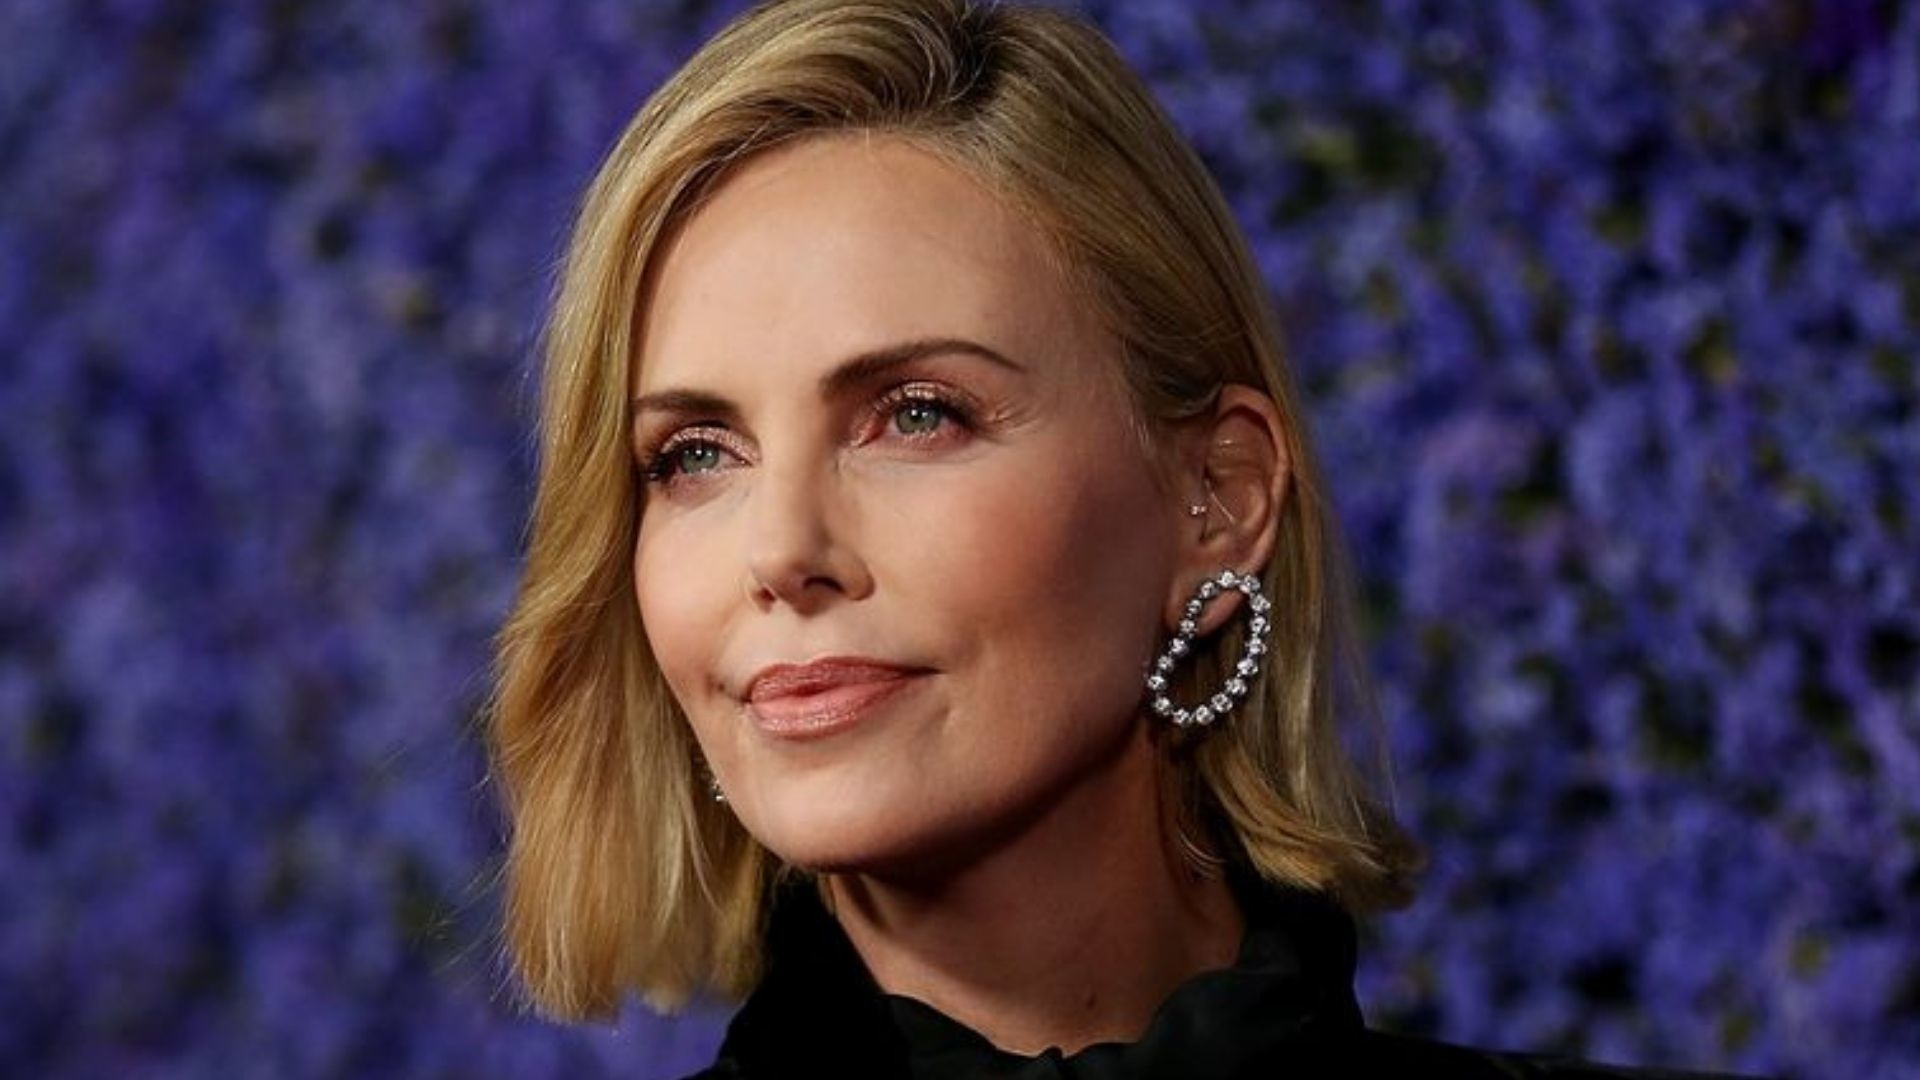 Charlize Theron Got A Bowl Cut And Frankly She Looks Incredible